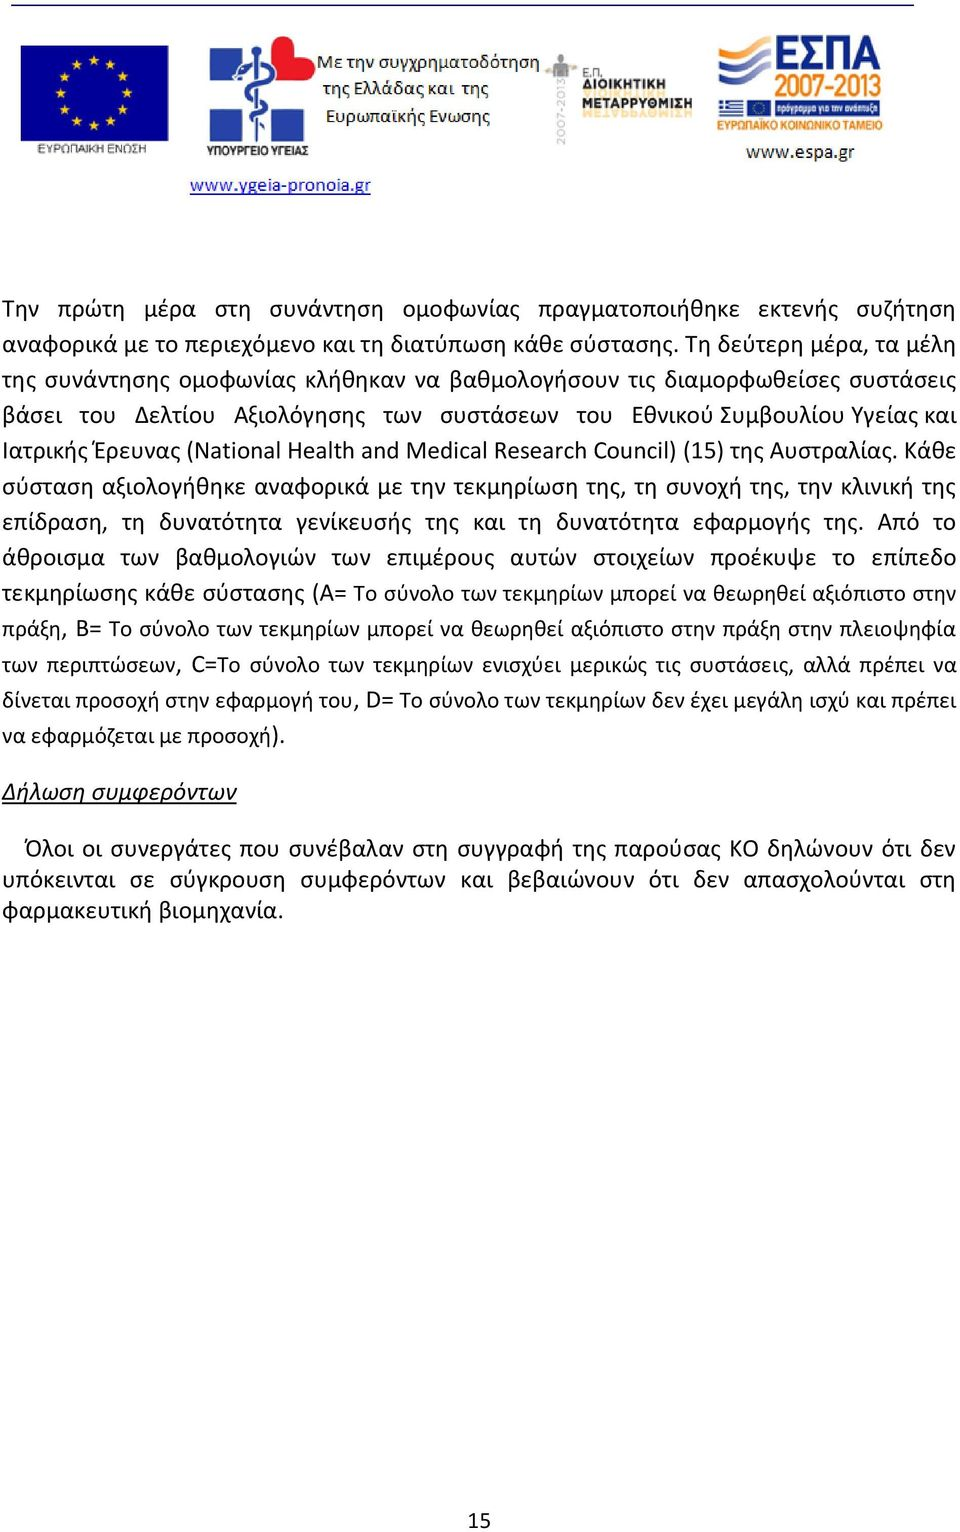 (National Health and Medical Research Council) (15) της Αυστραλίας.